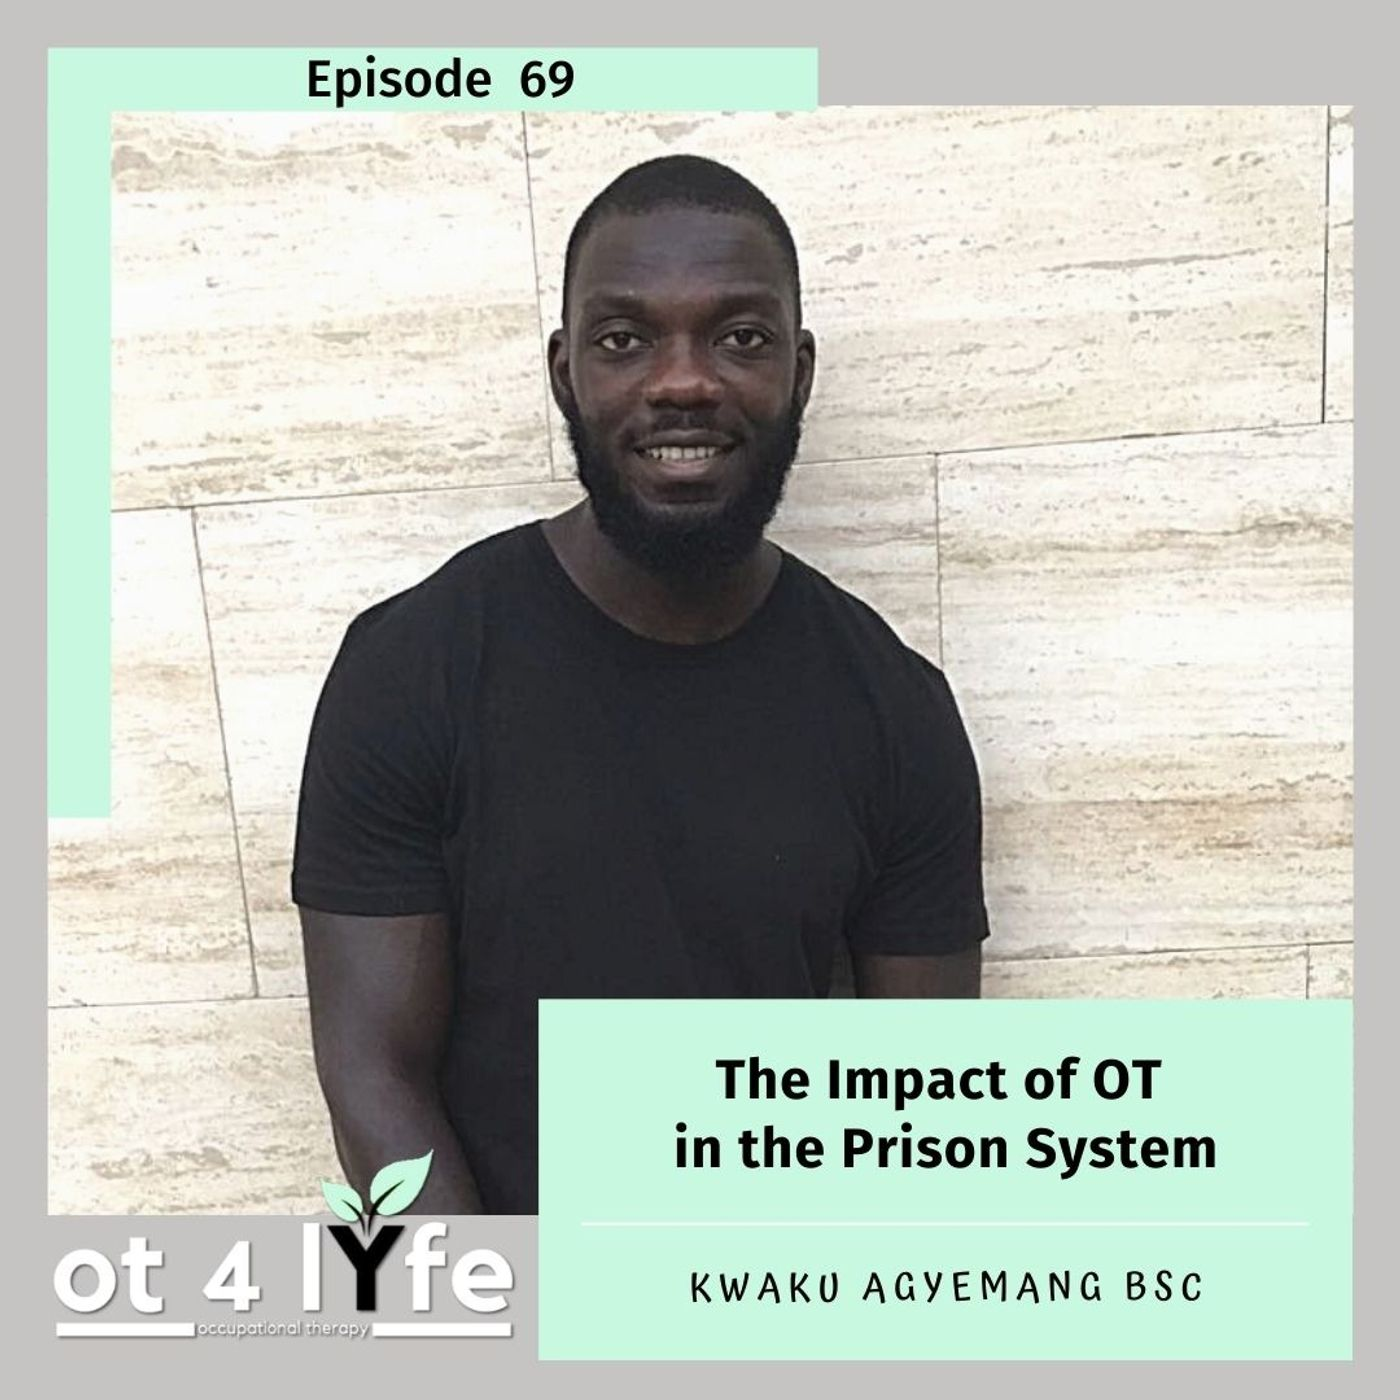 The Impact of OT in the Prison System with Kwaku Agyemang